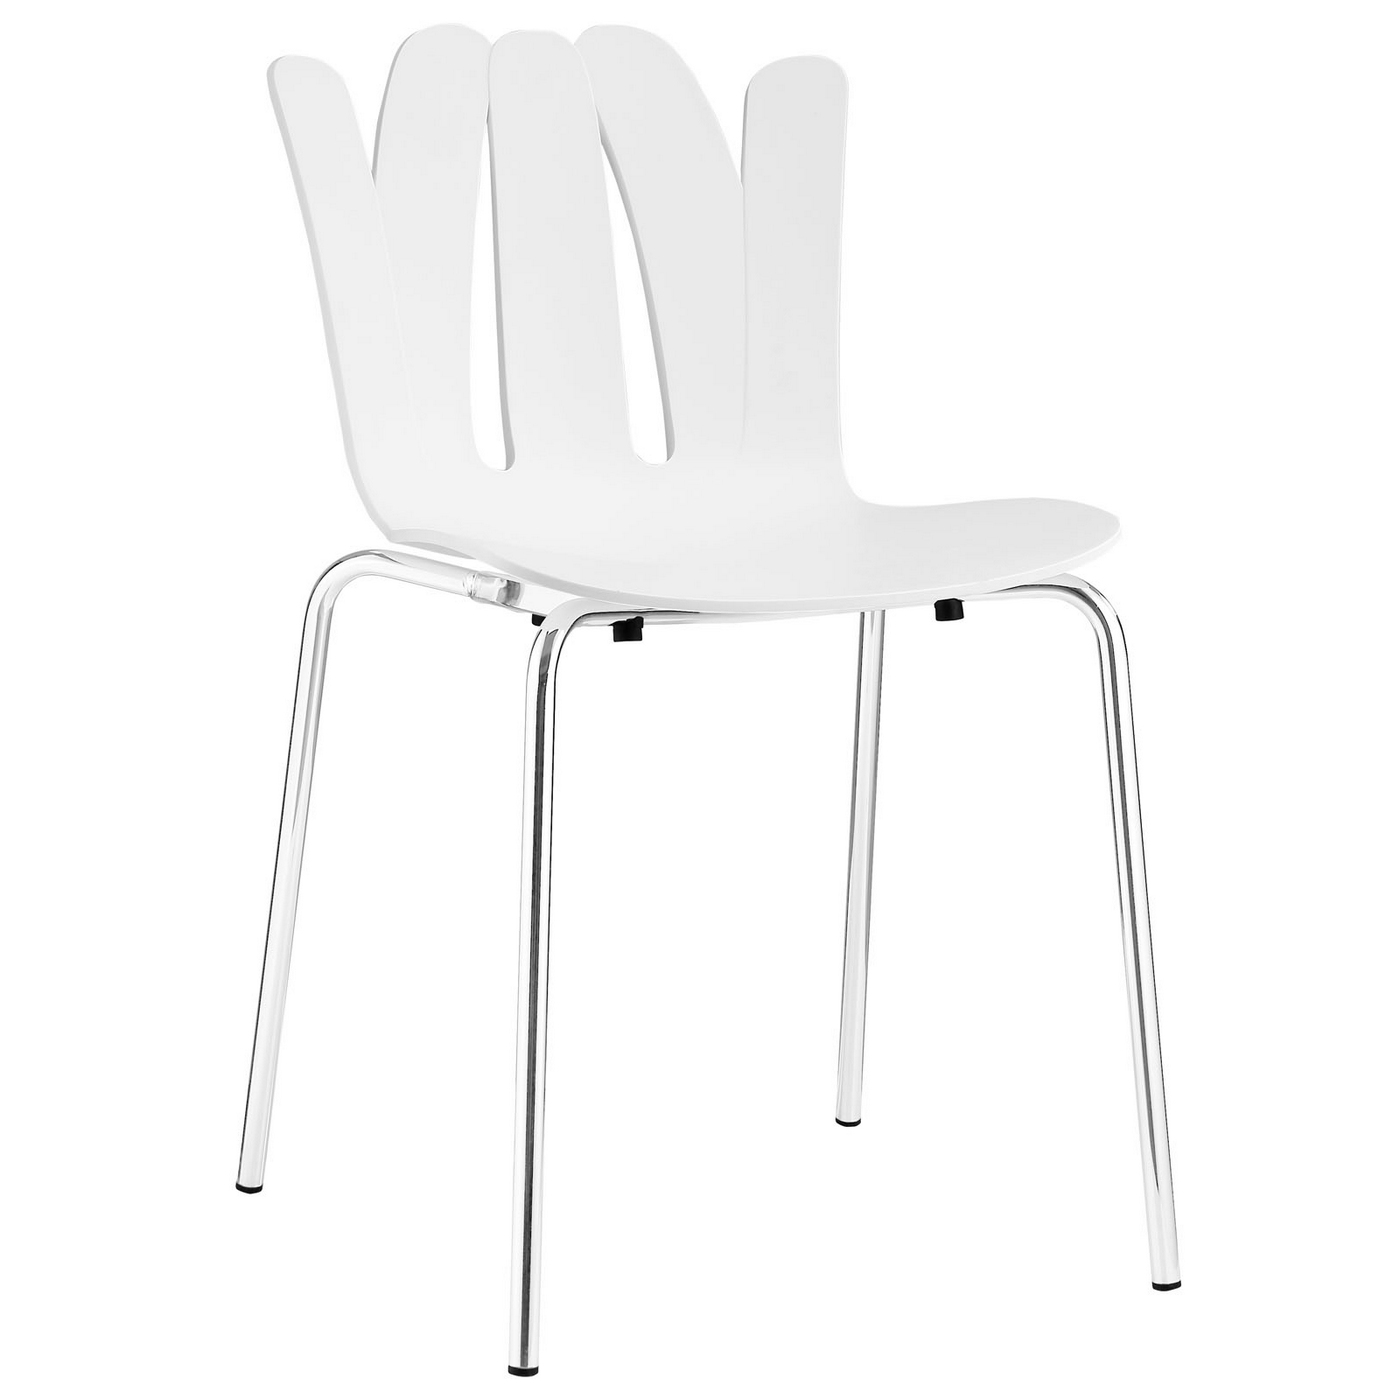 Details About Flare Modern Stackable Stylish Plastic Dining Side Chair With Steel Frame White